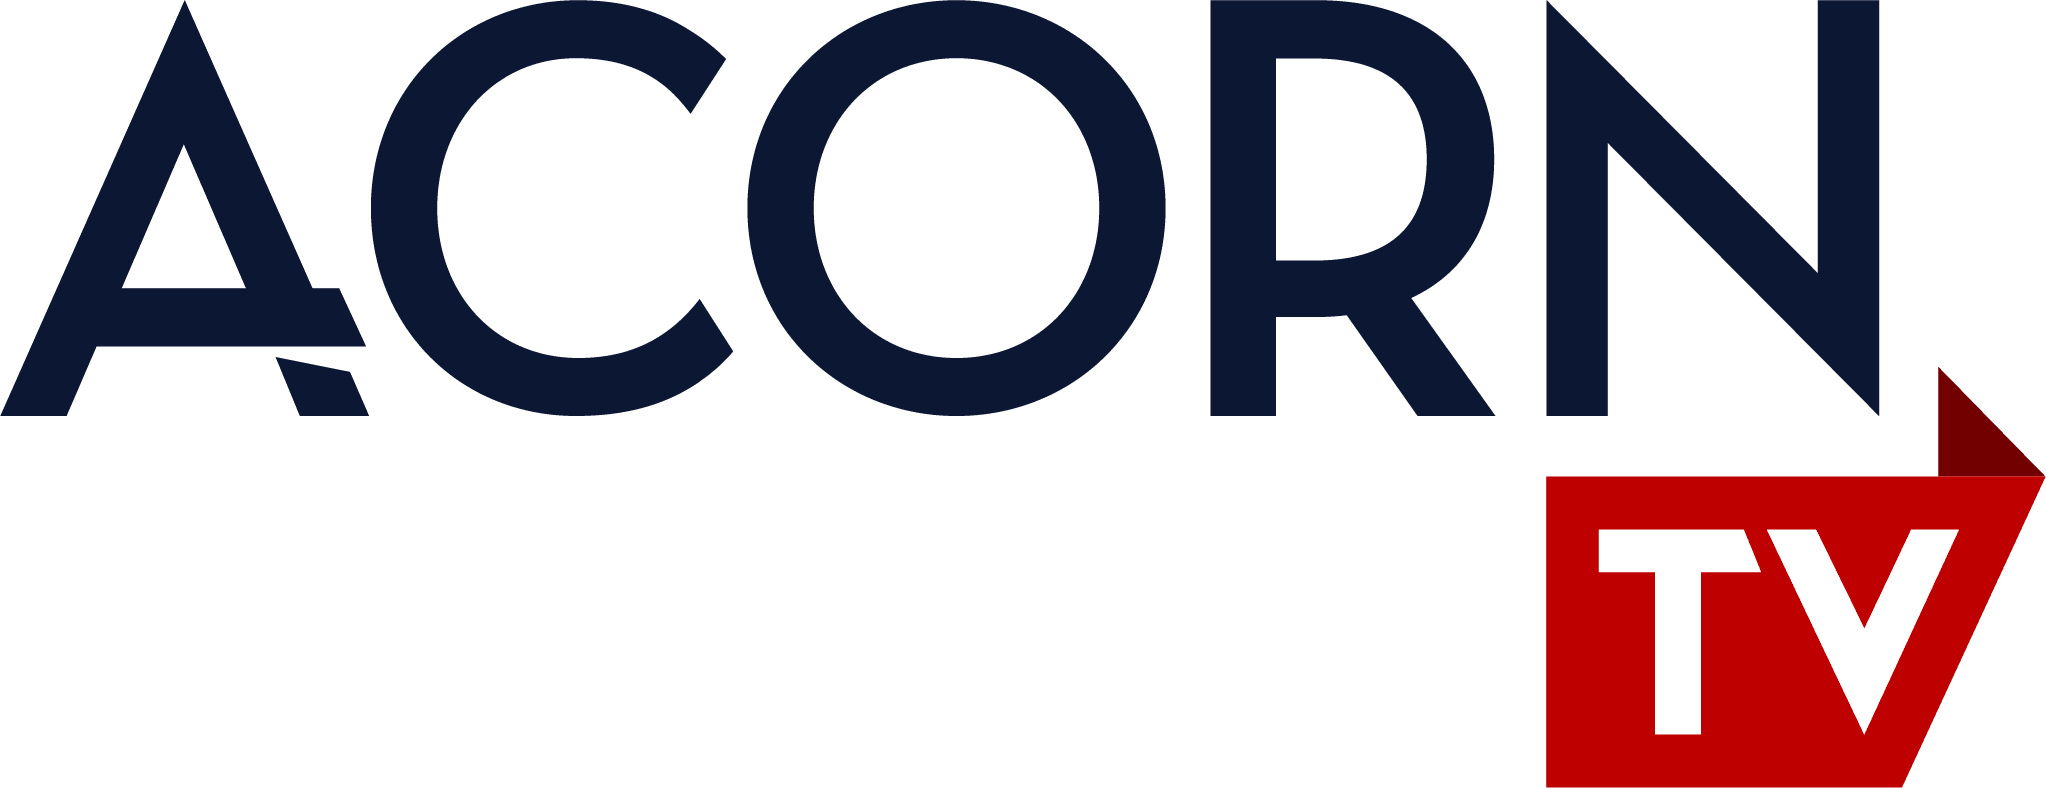 ACORN-TV Logo Image Opens in new window